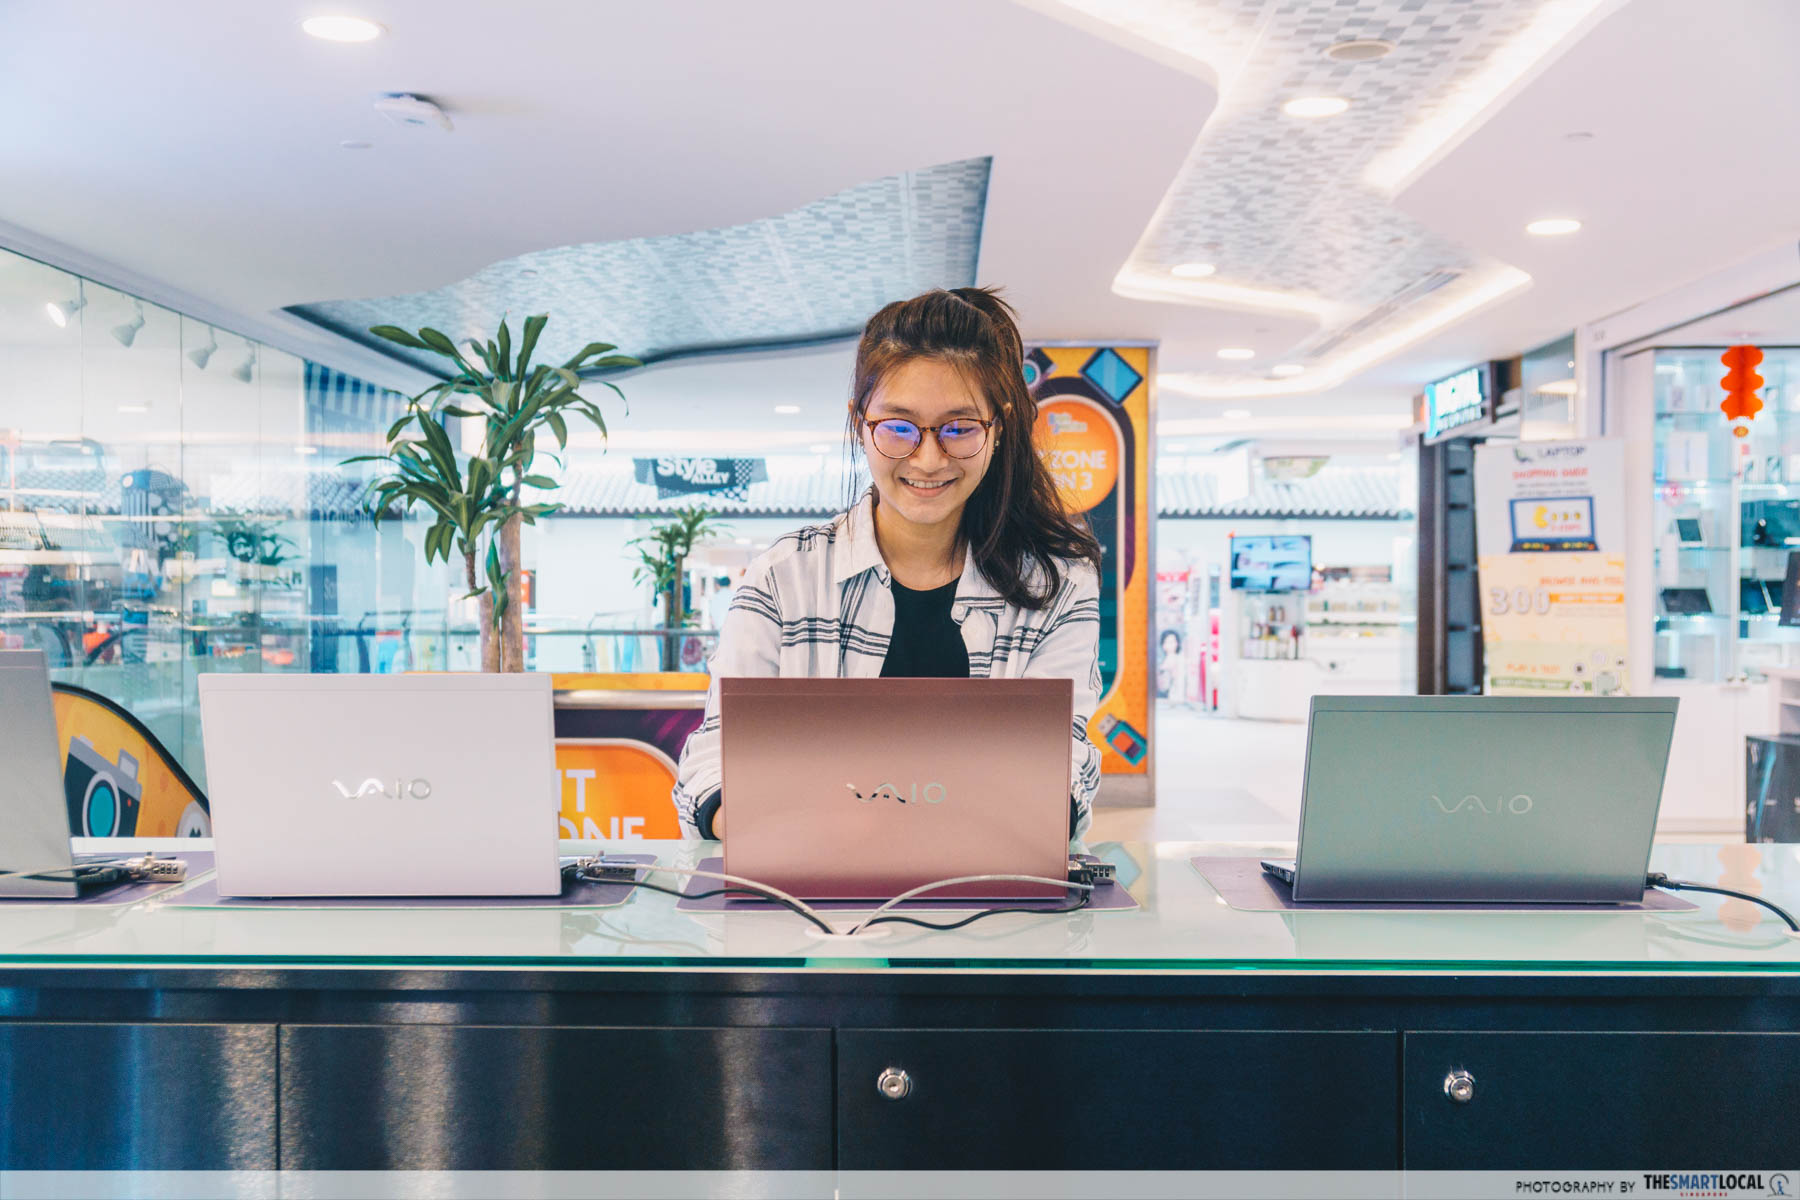 Student discounts on laptops